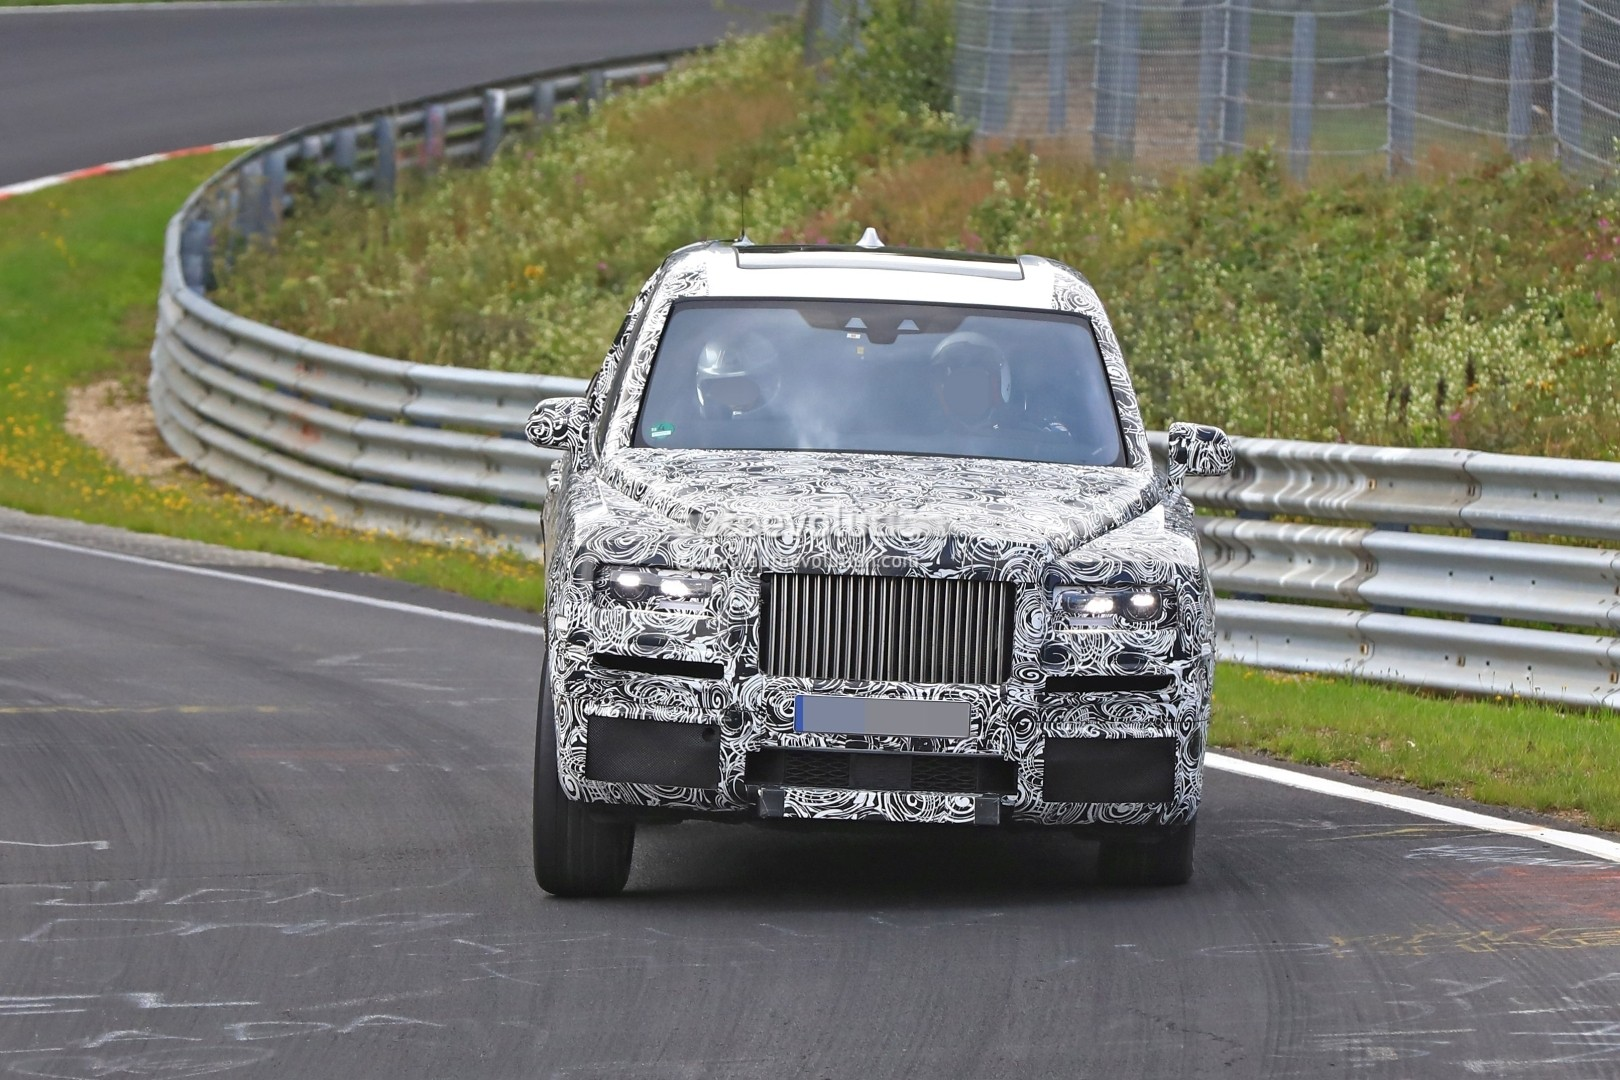 Rolls-Royce Phantom VIII Is The 'Most Silent' Car In The World